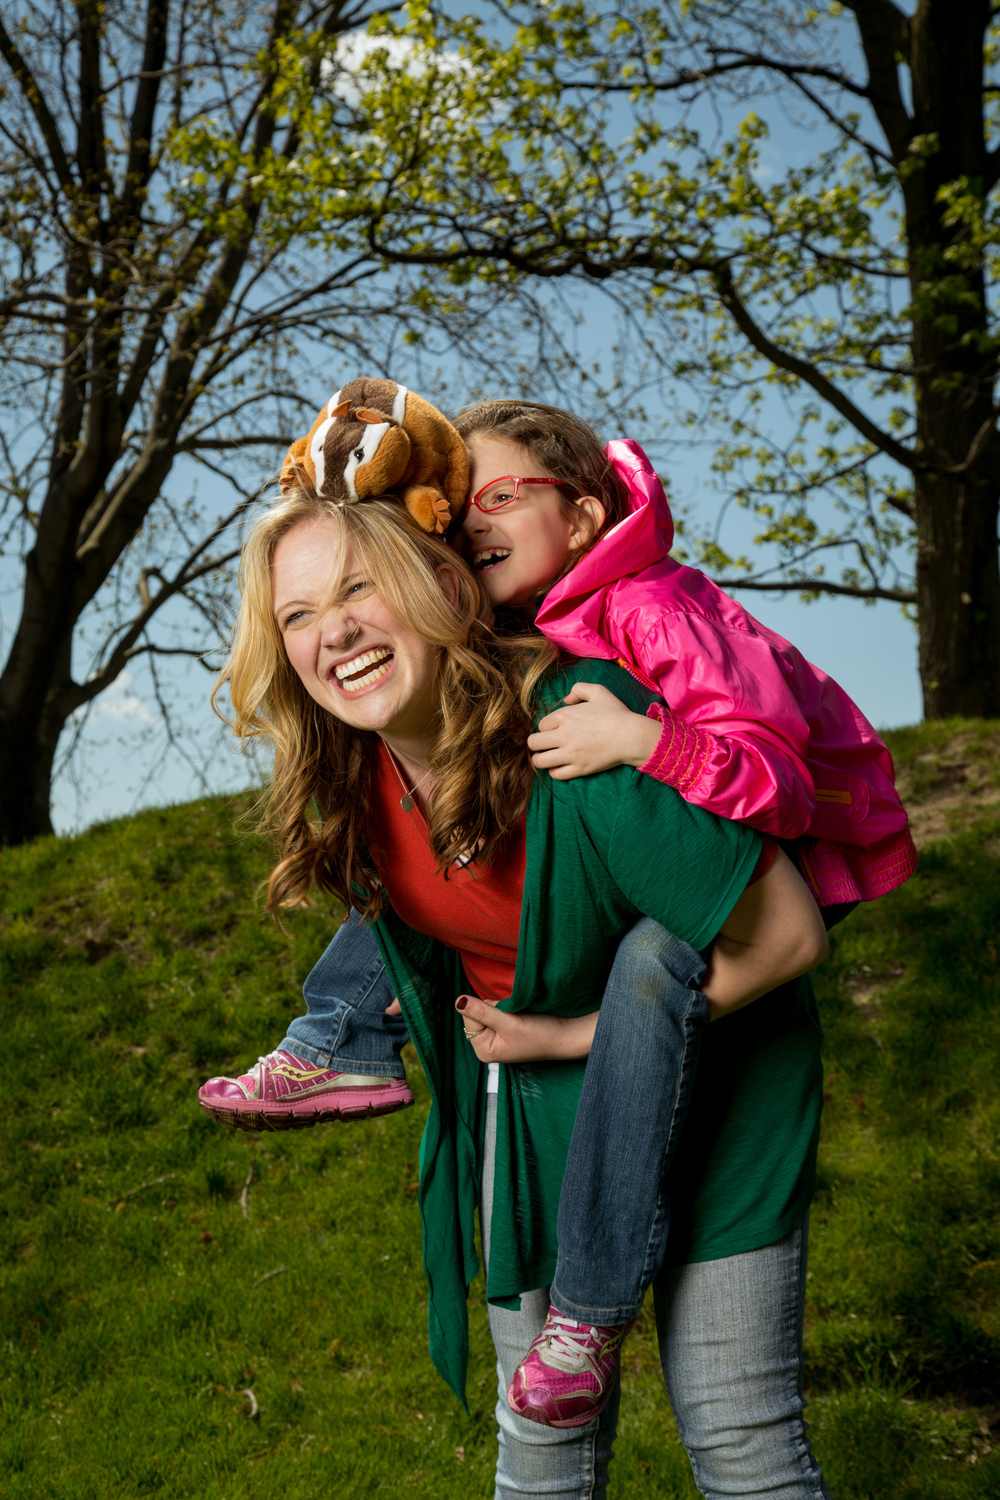 portrait of a mom and daughter outdoors